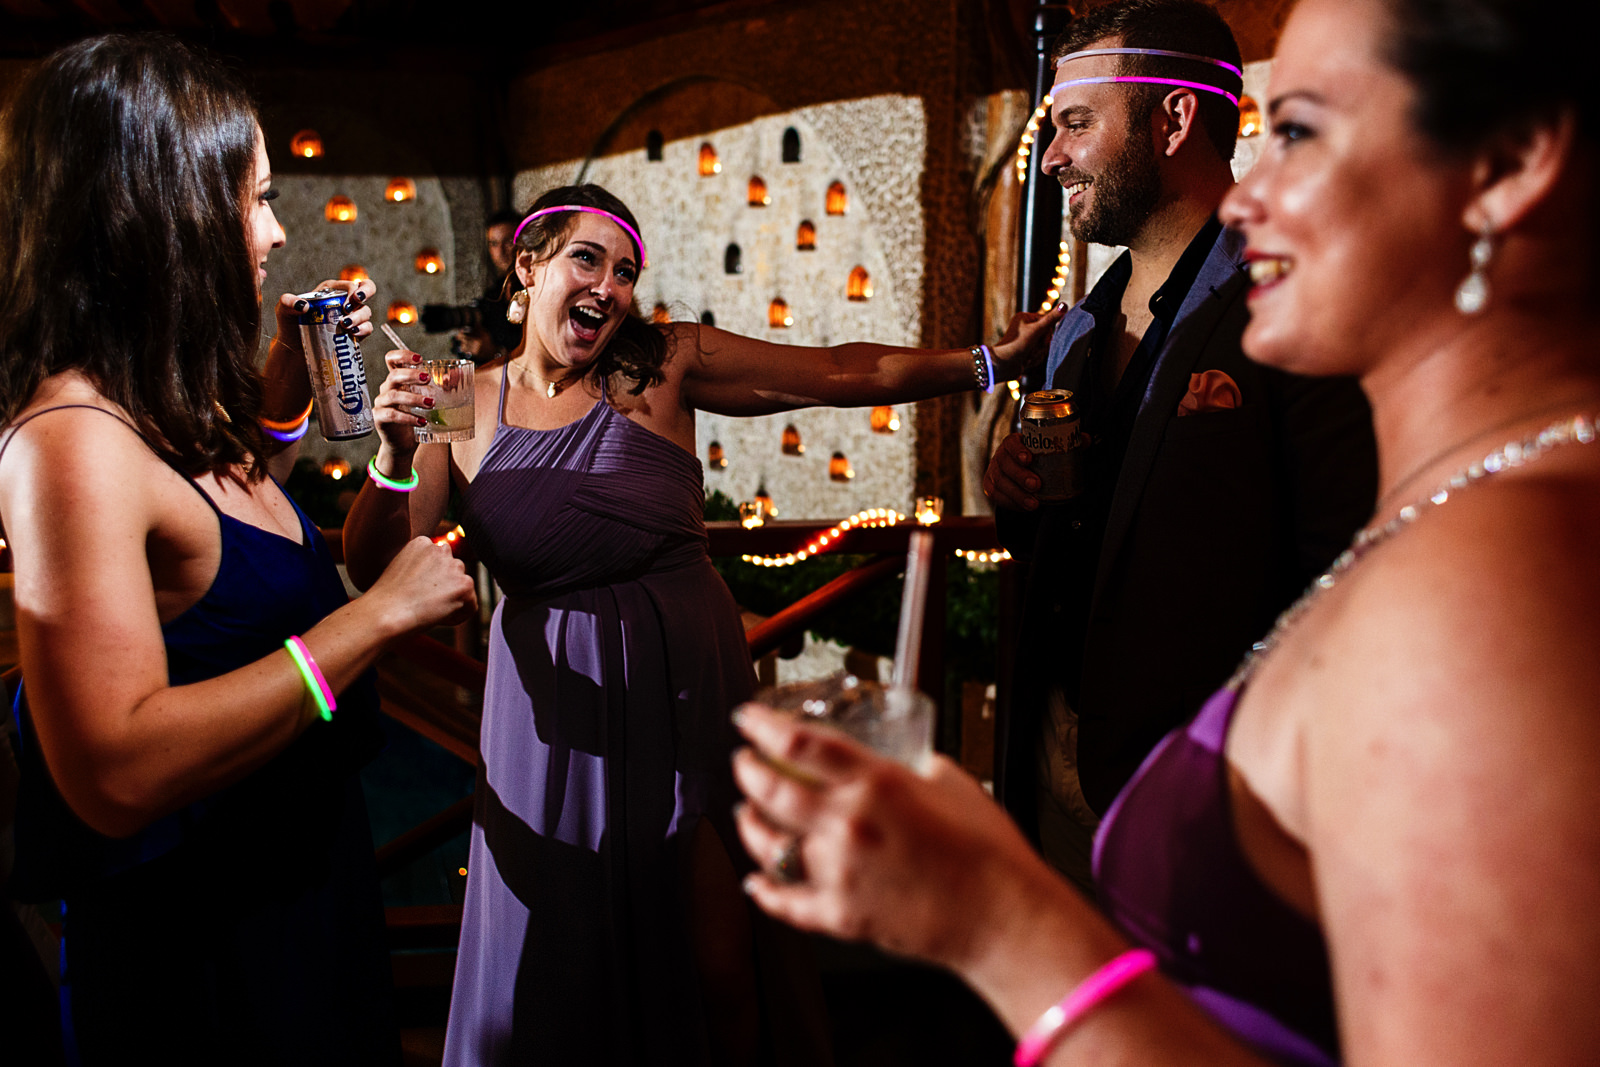 guests-party-fun-dancefloor-color-tubes.jpg